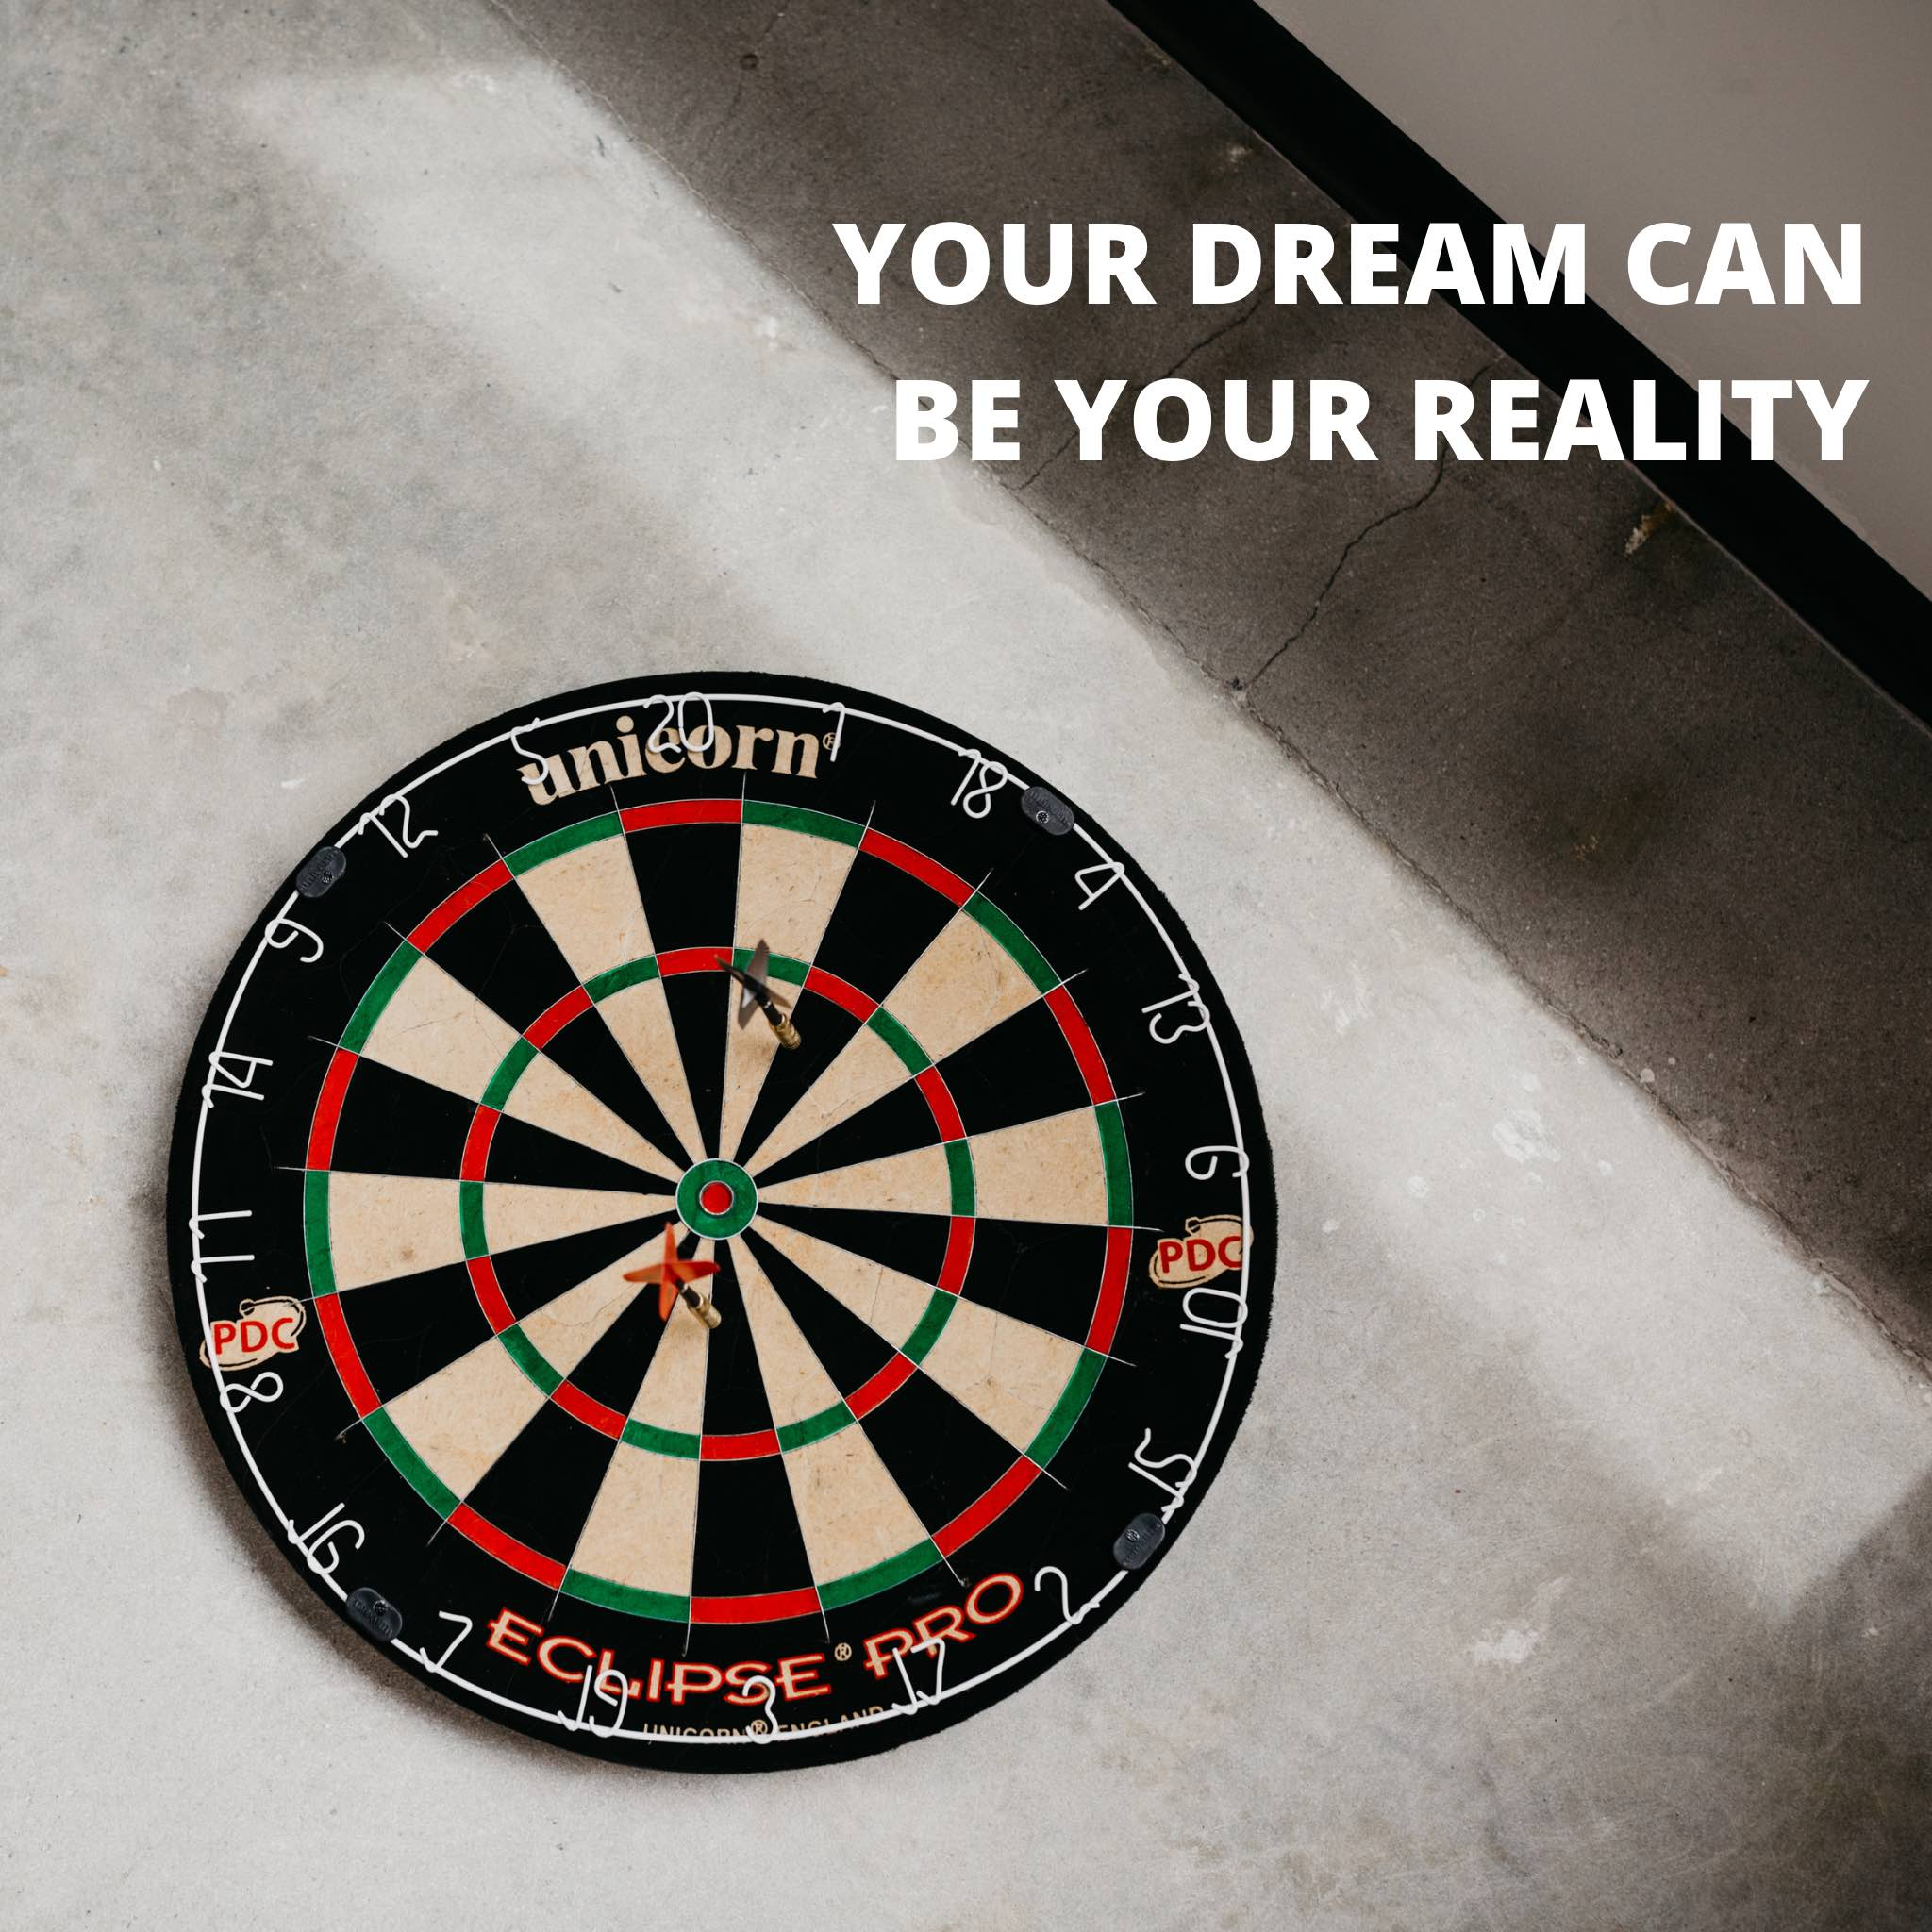 if_you_target_your_dreams_.jpg